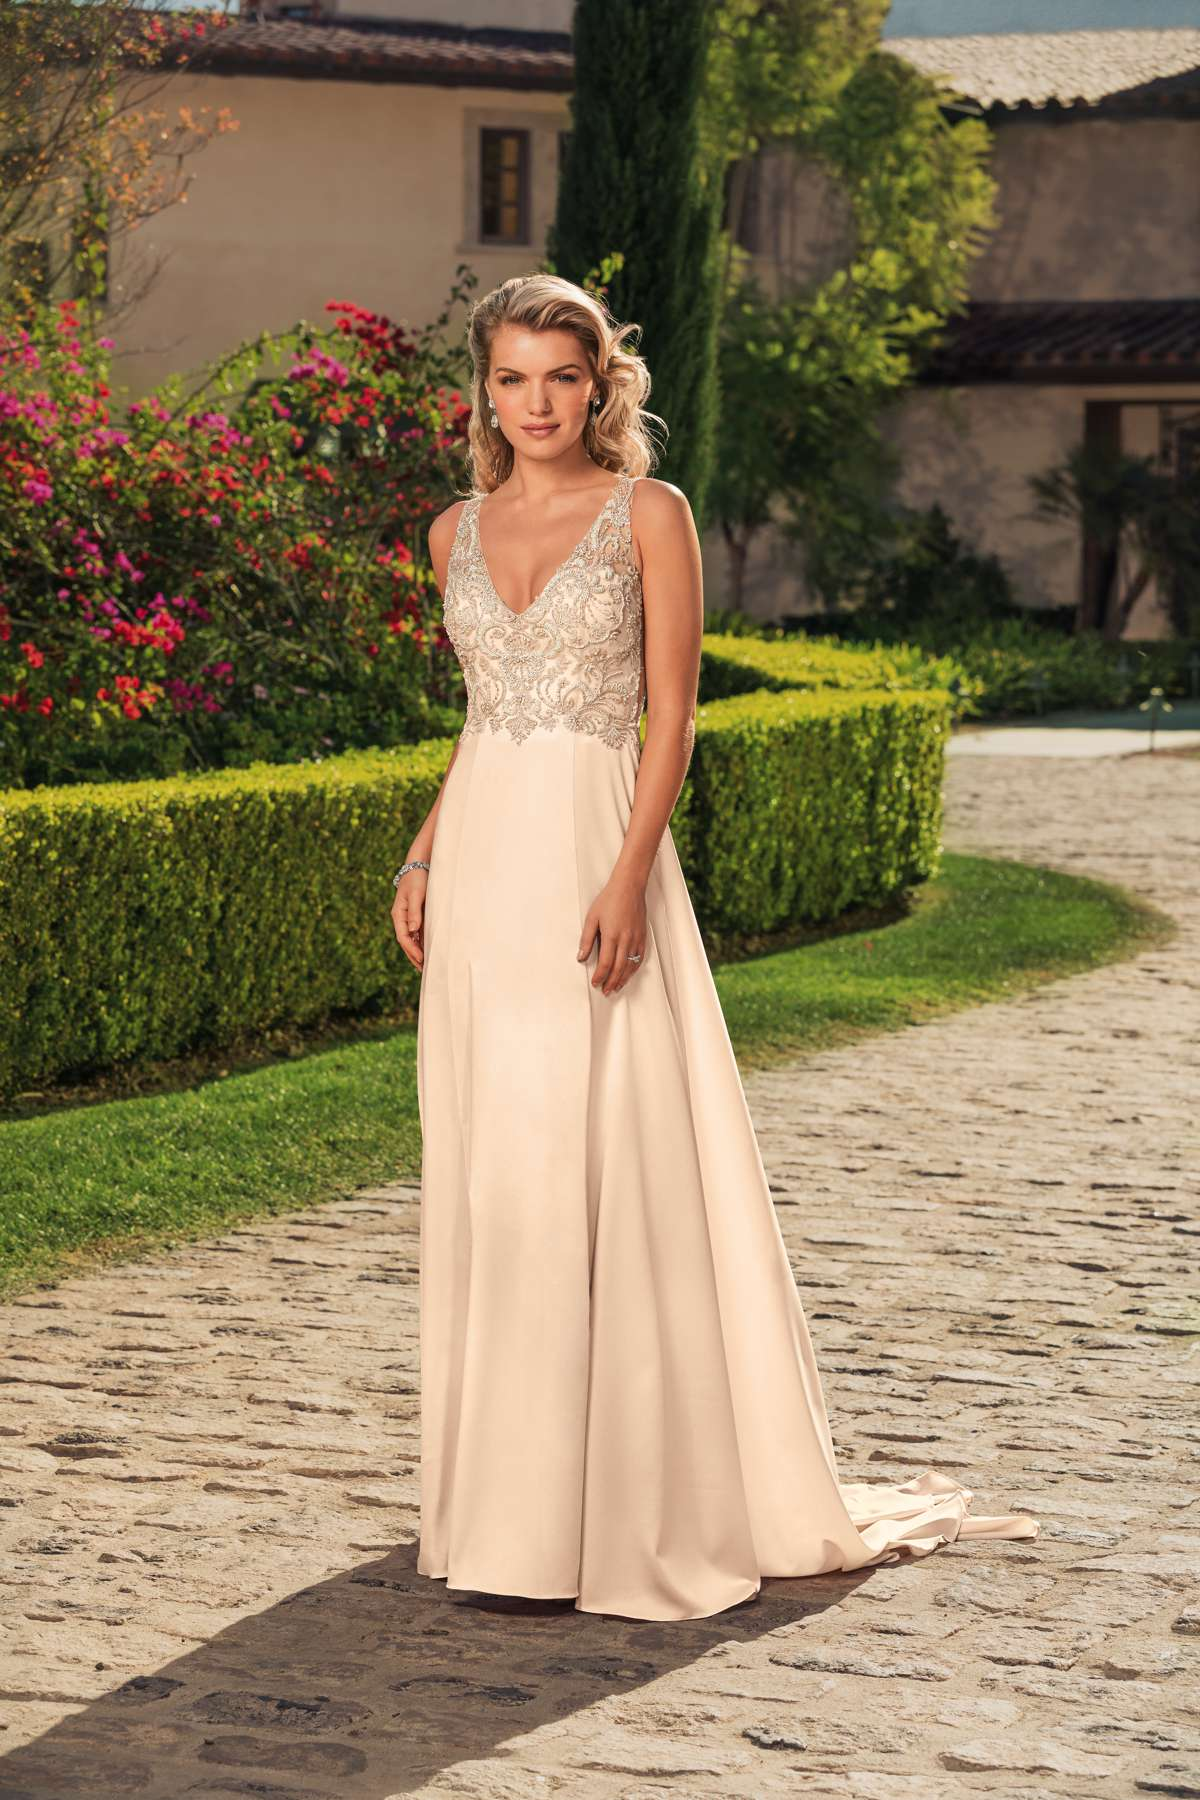 378d436c59 Rosa by Casablanca Bridal - Find Your Dream Dress